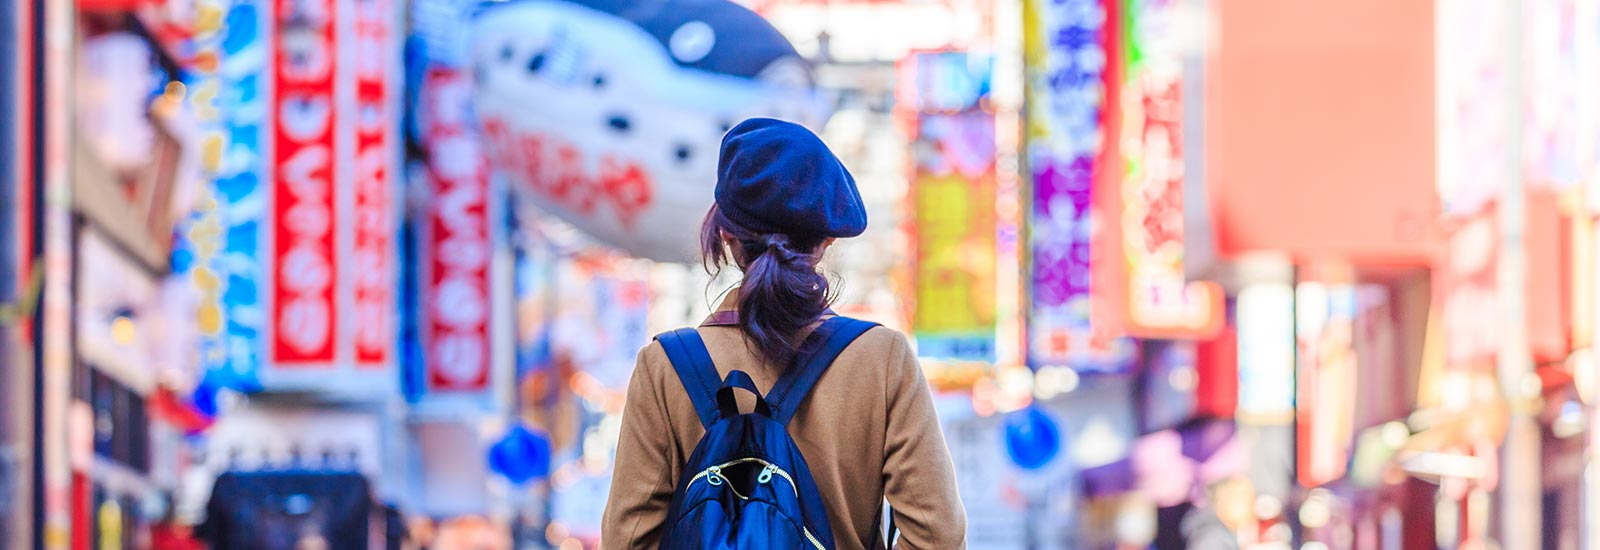 Getting Social—All About Japanese Millennials